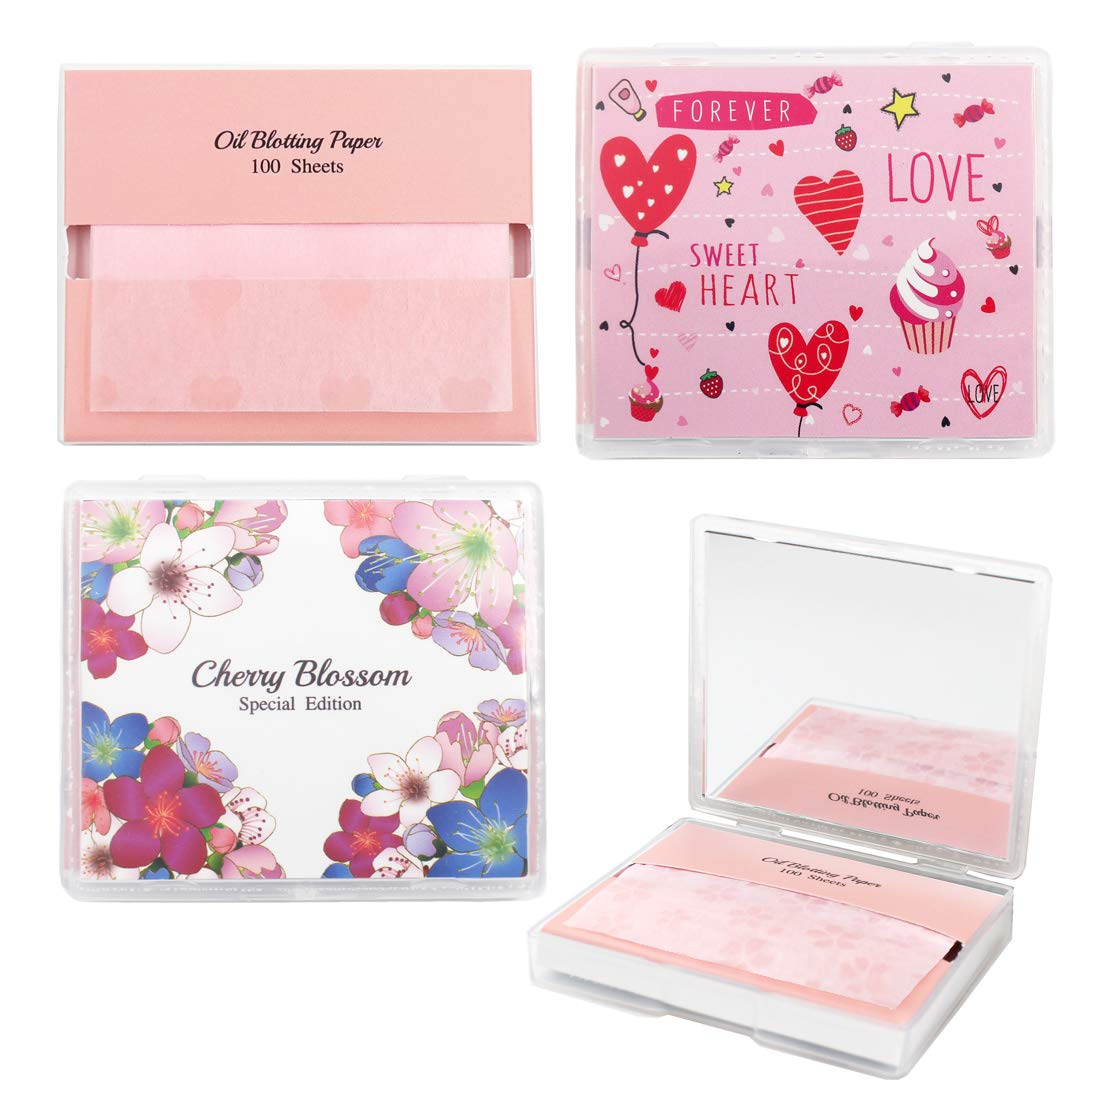 Cherry Blossom Face Oil Blotting Paper Sheets with Makeup Mirror - Oil Absorbing Sheets made in Japan (400 Count, Pink Sensation) by Nature's Secret Lab